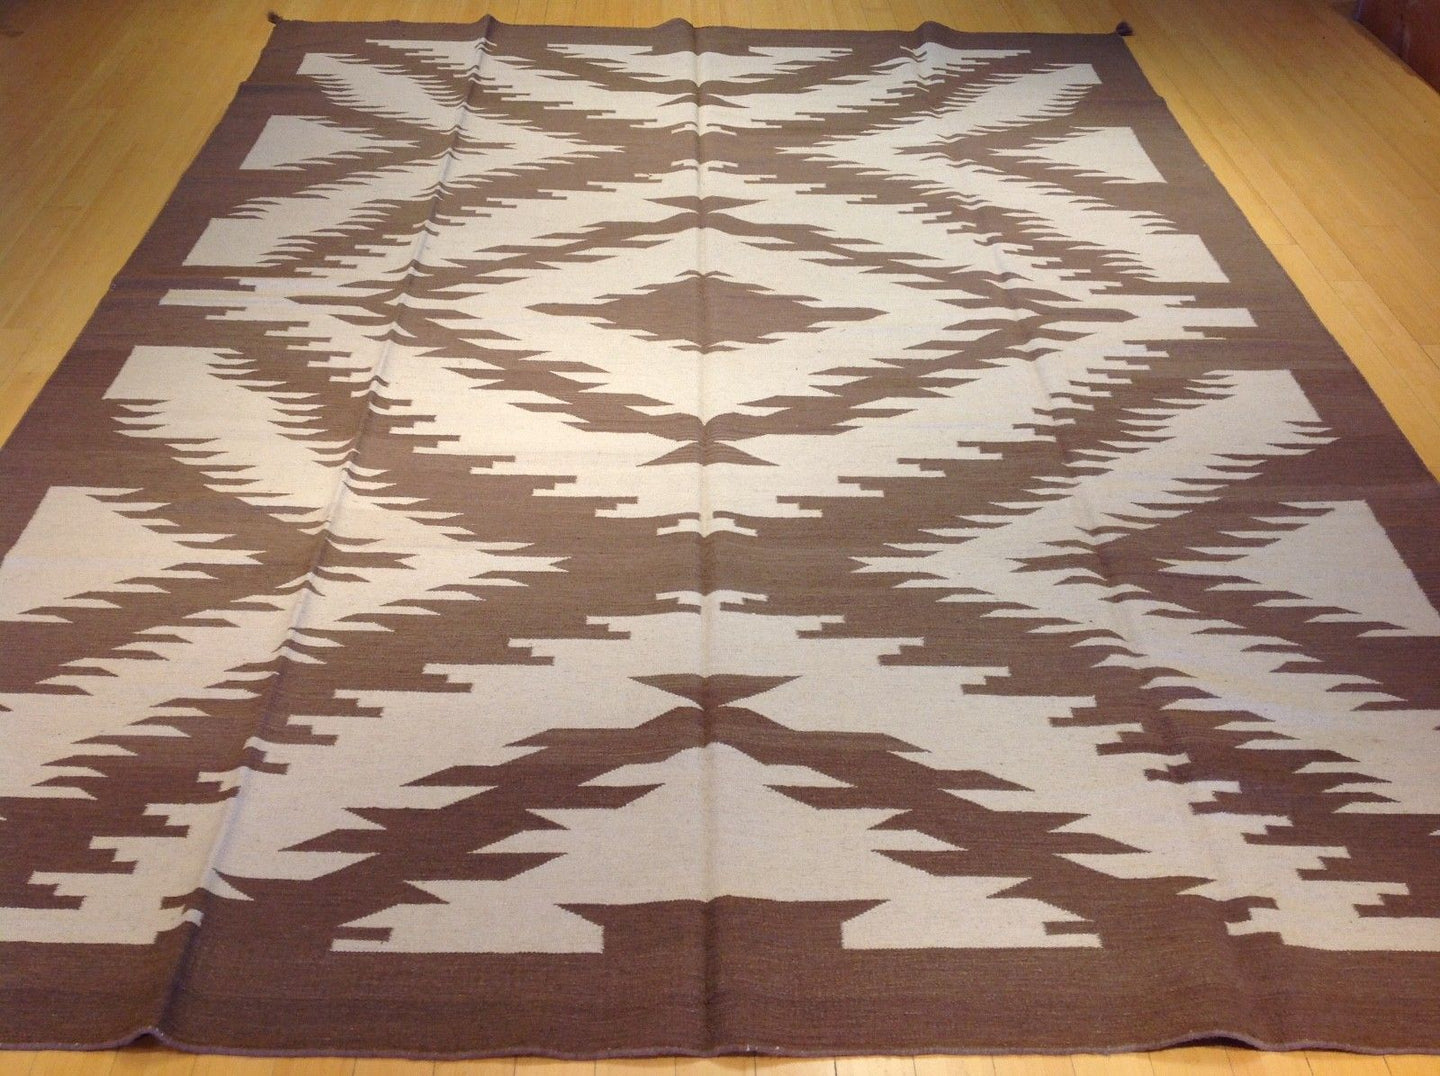 Stunning Handwoven Reversible Dhurrie Southwestern Design Splendid Real Wool Amazing Unique Rug